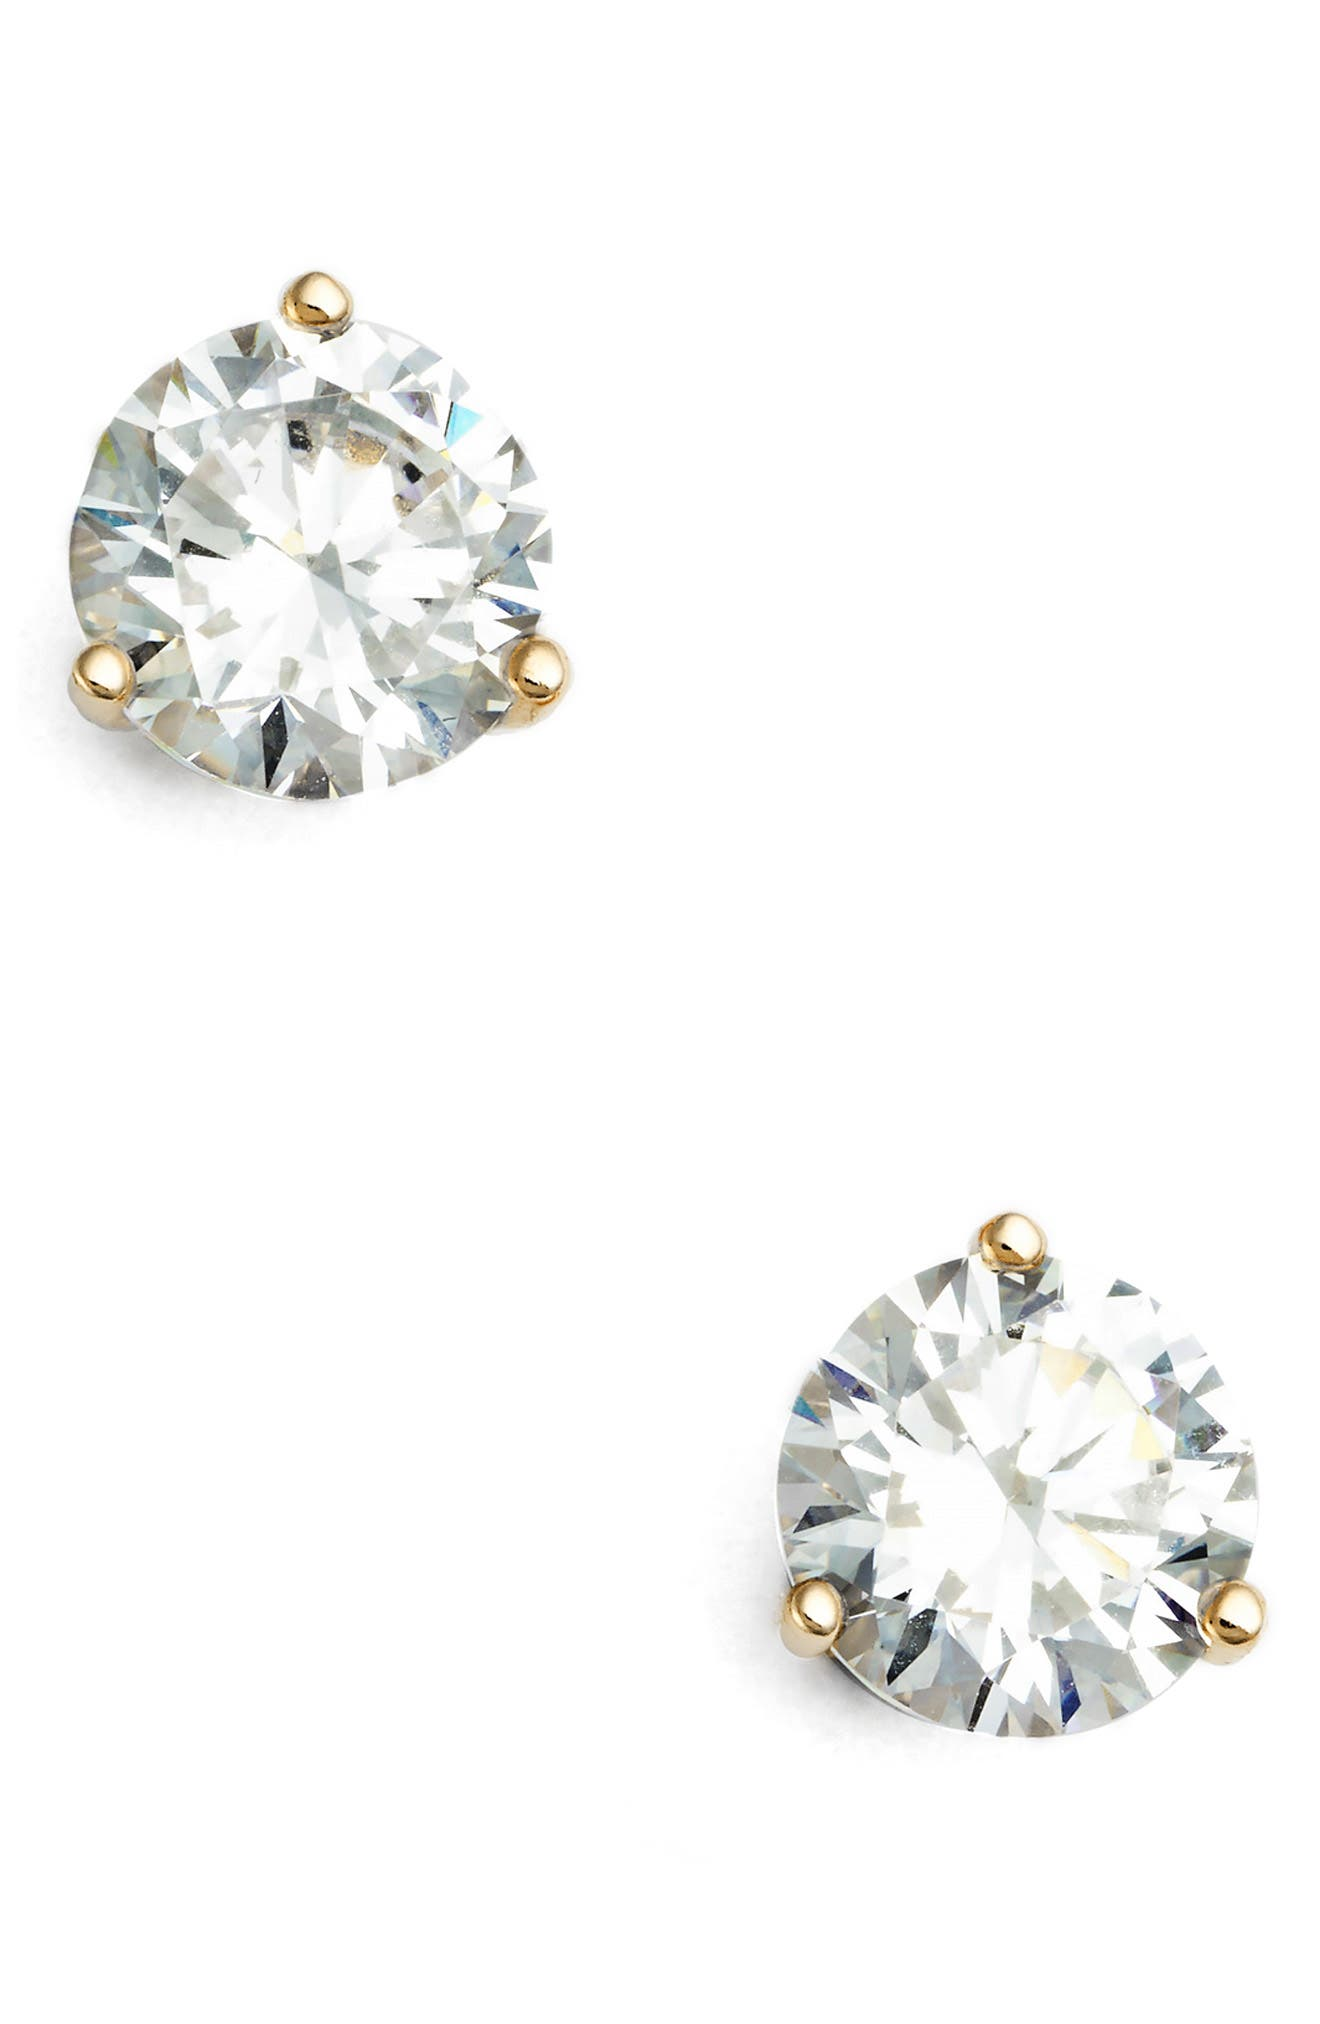 2ct tw Cubic Zirconia Earrings,                         Main,                         color, Clear Cz/ Gold Vermeil